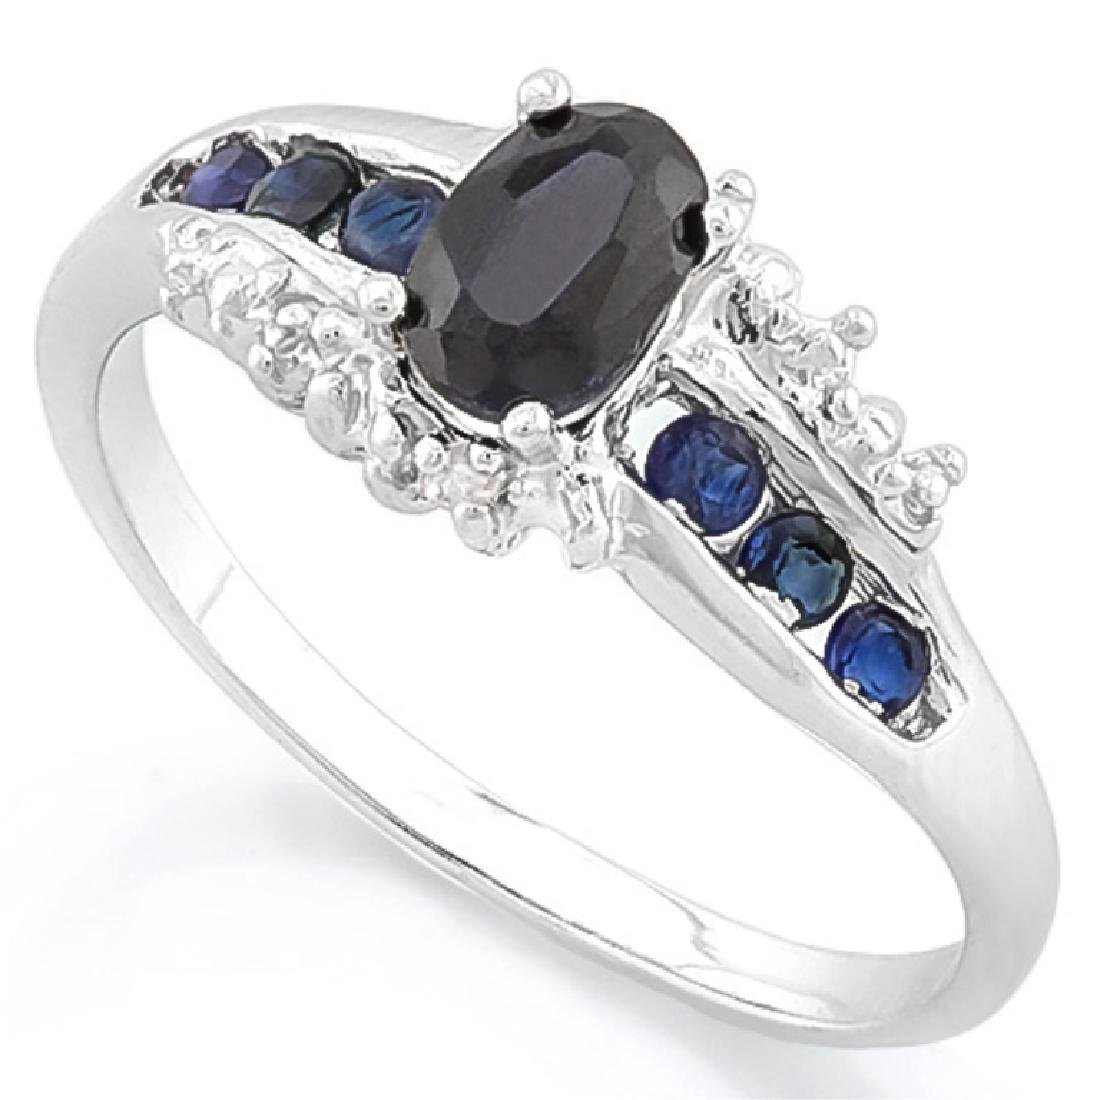 ANTIQUE STYLE MIDNIGHT BLUE SAPPHIRE STERLING RING